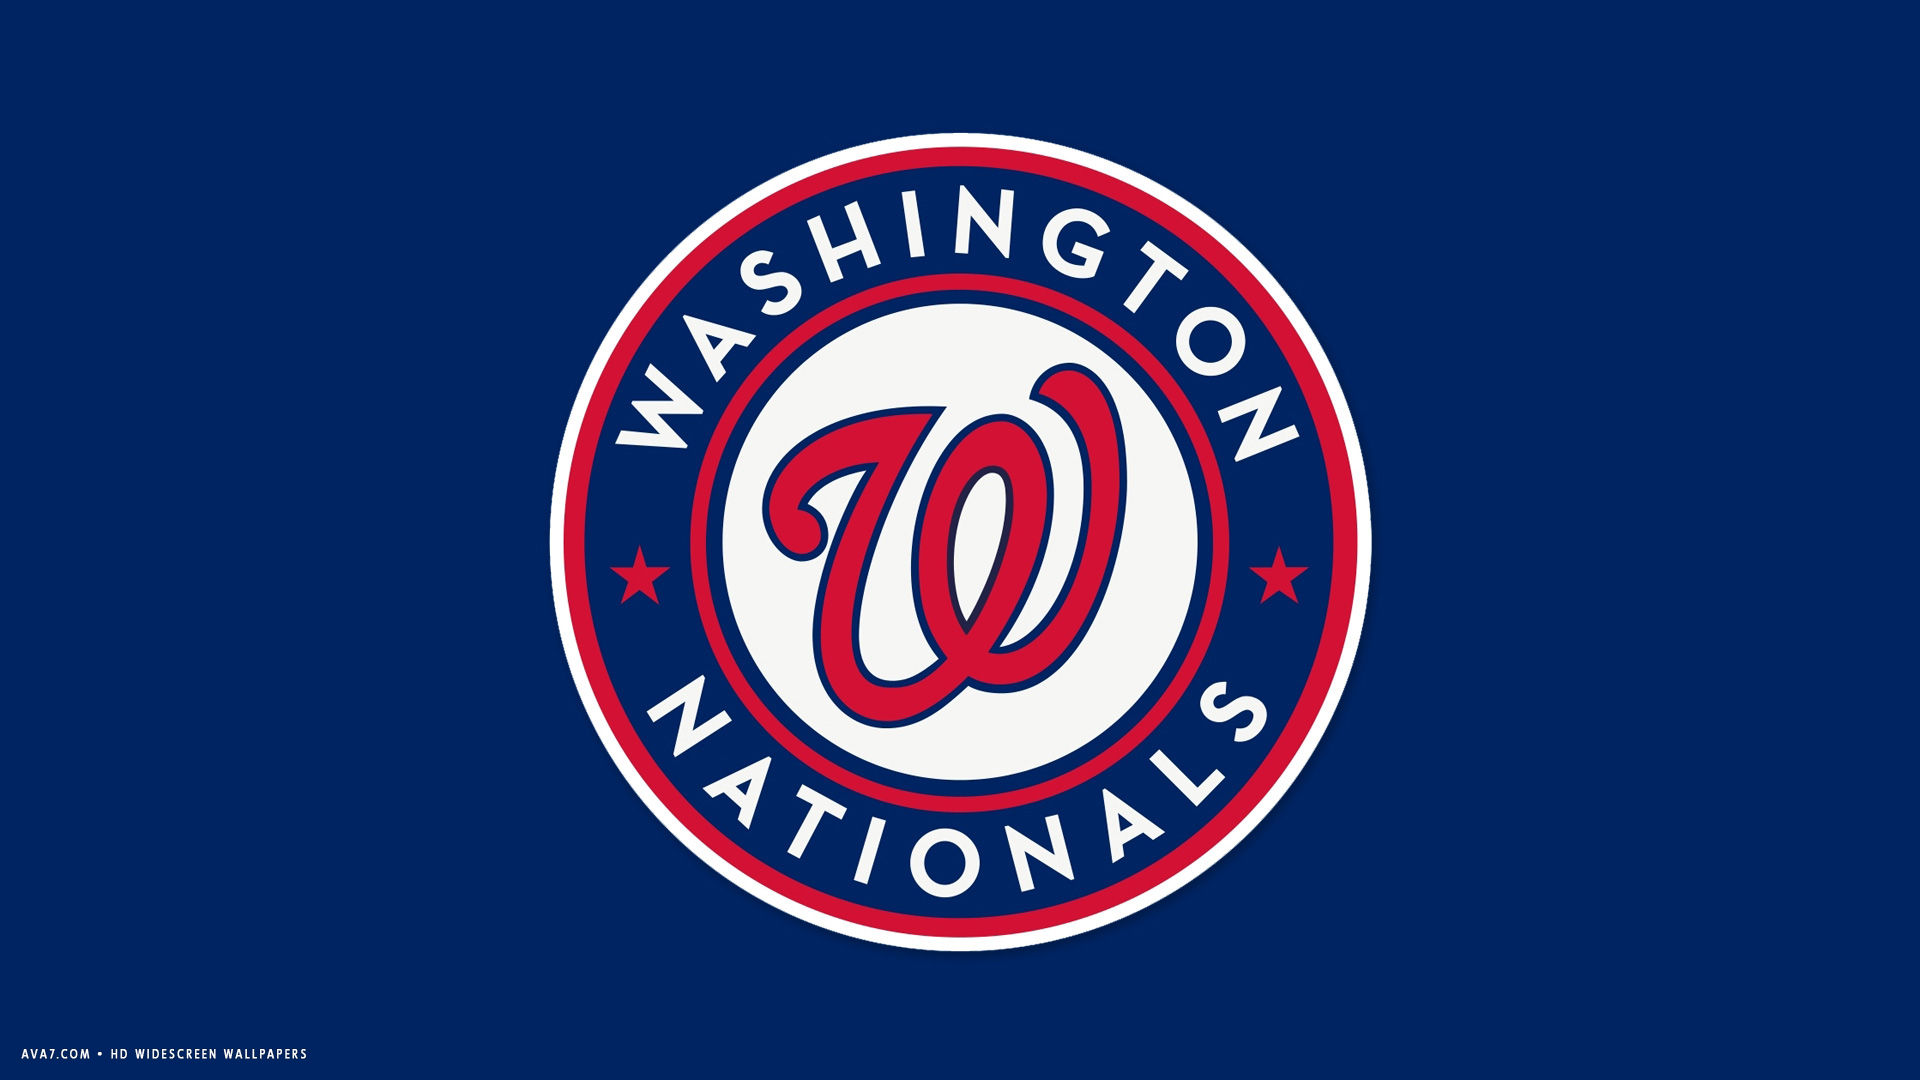 washington nationals wallpapers 31462 4626009   N Street Village 1920x1080